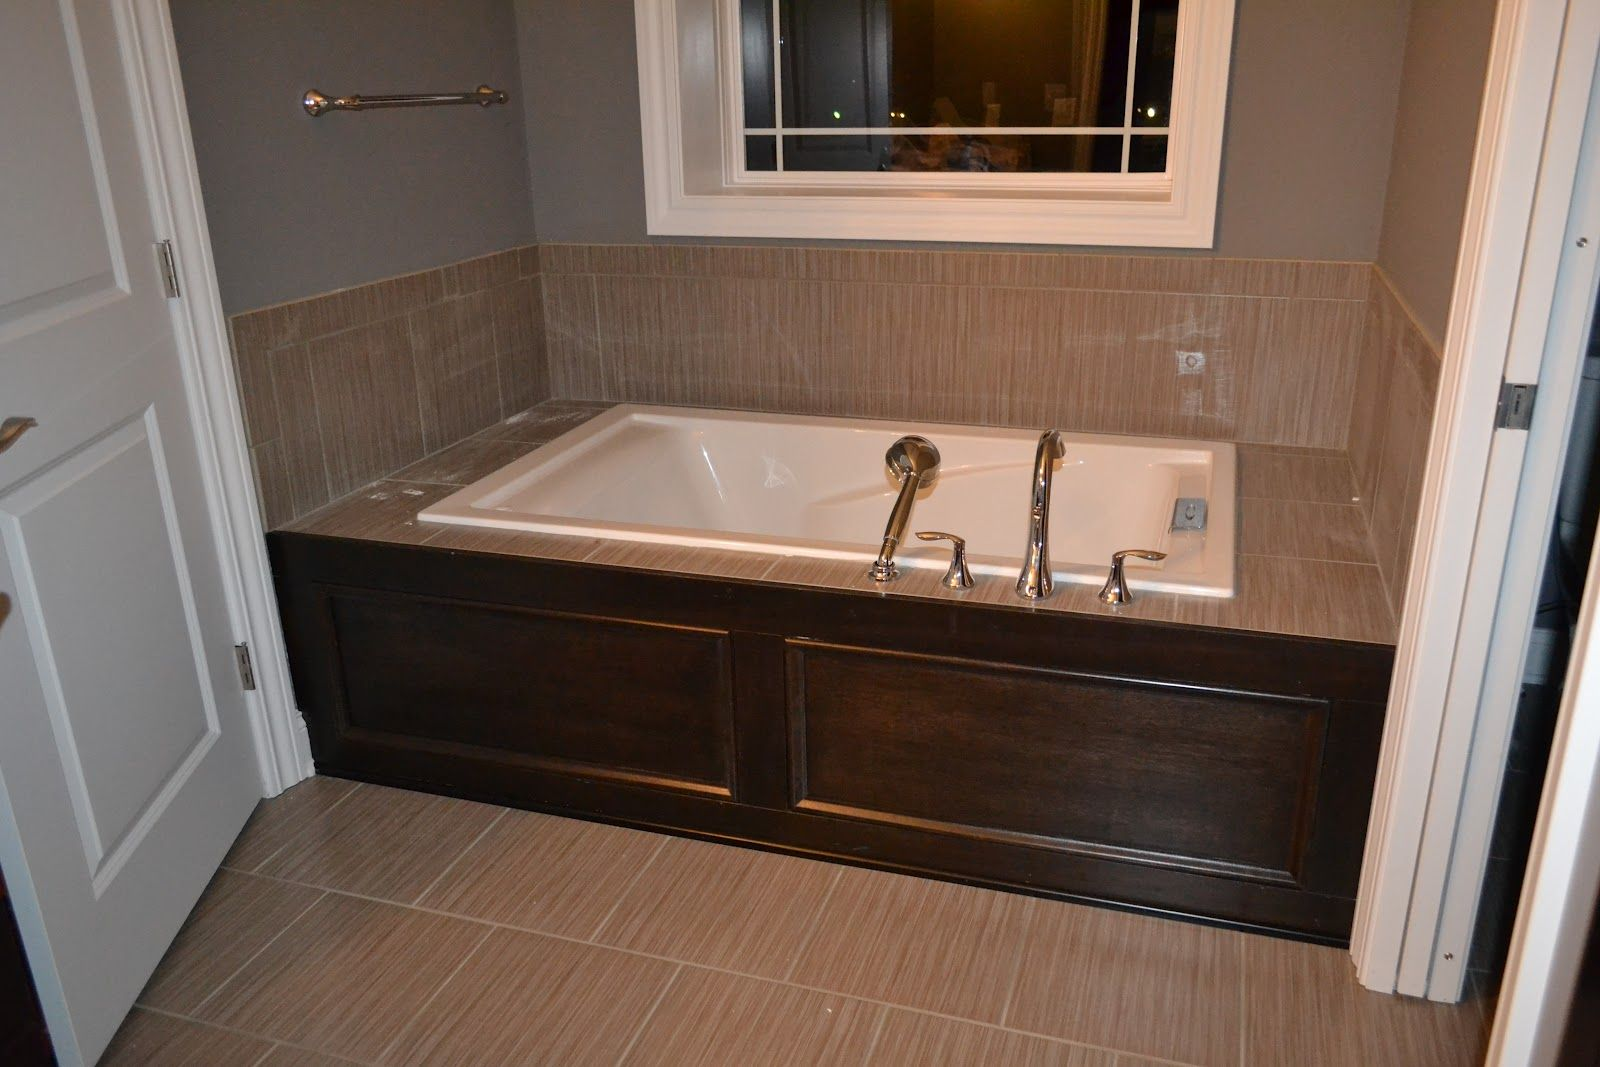 pics of tubs with wood surround we also got our first peek at the tub surround in place for. Black Bedroom Furniture Sets. Home Design Ideas